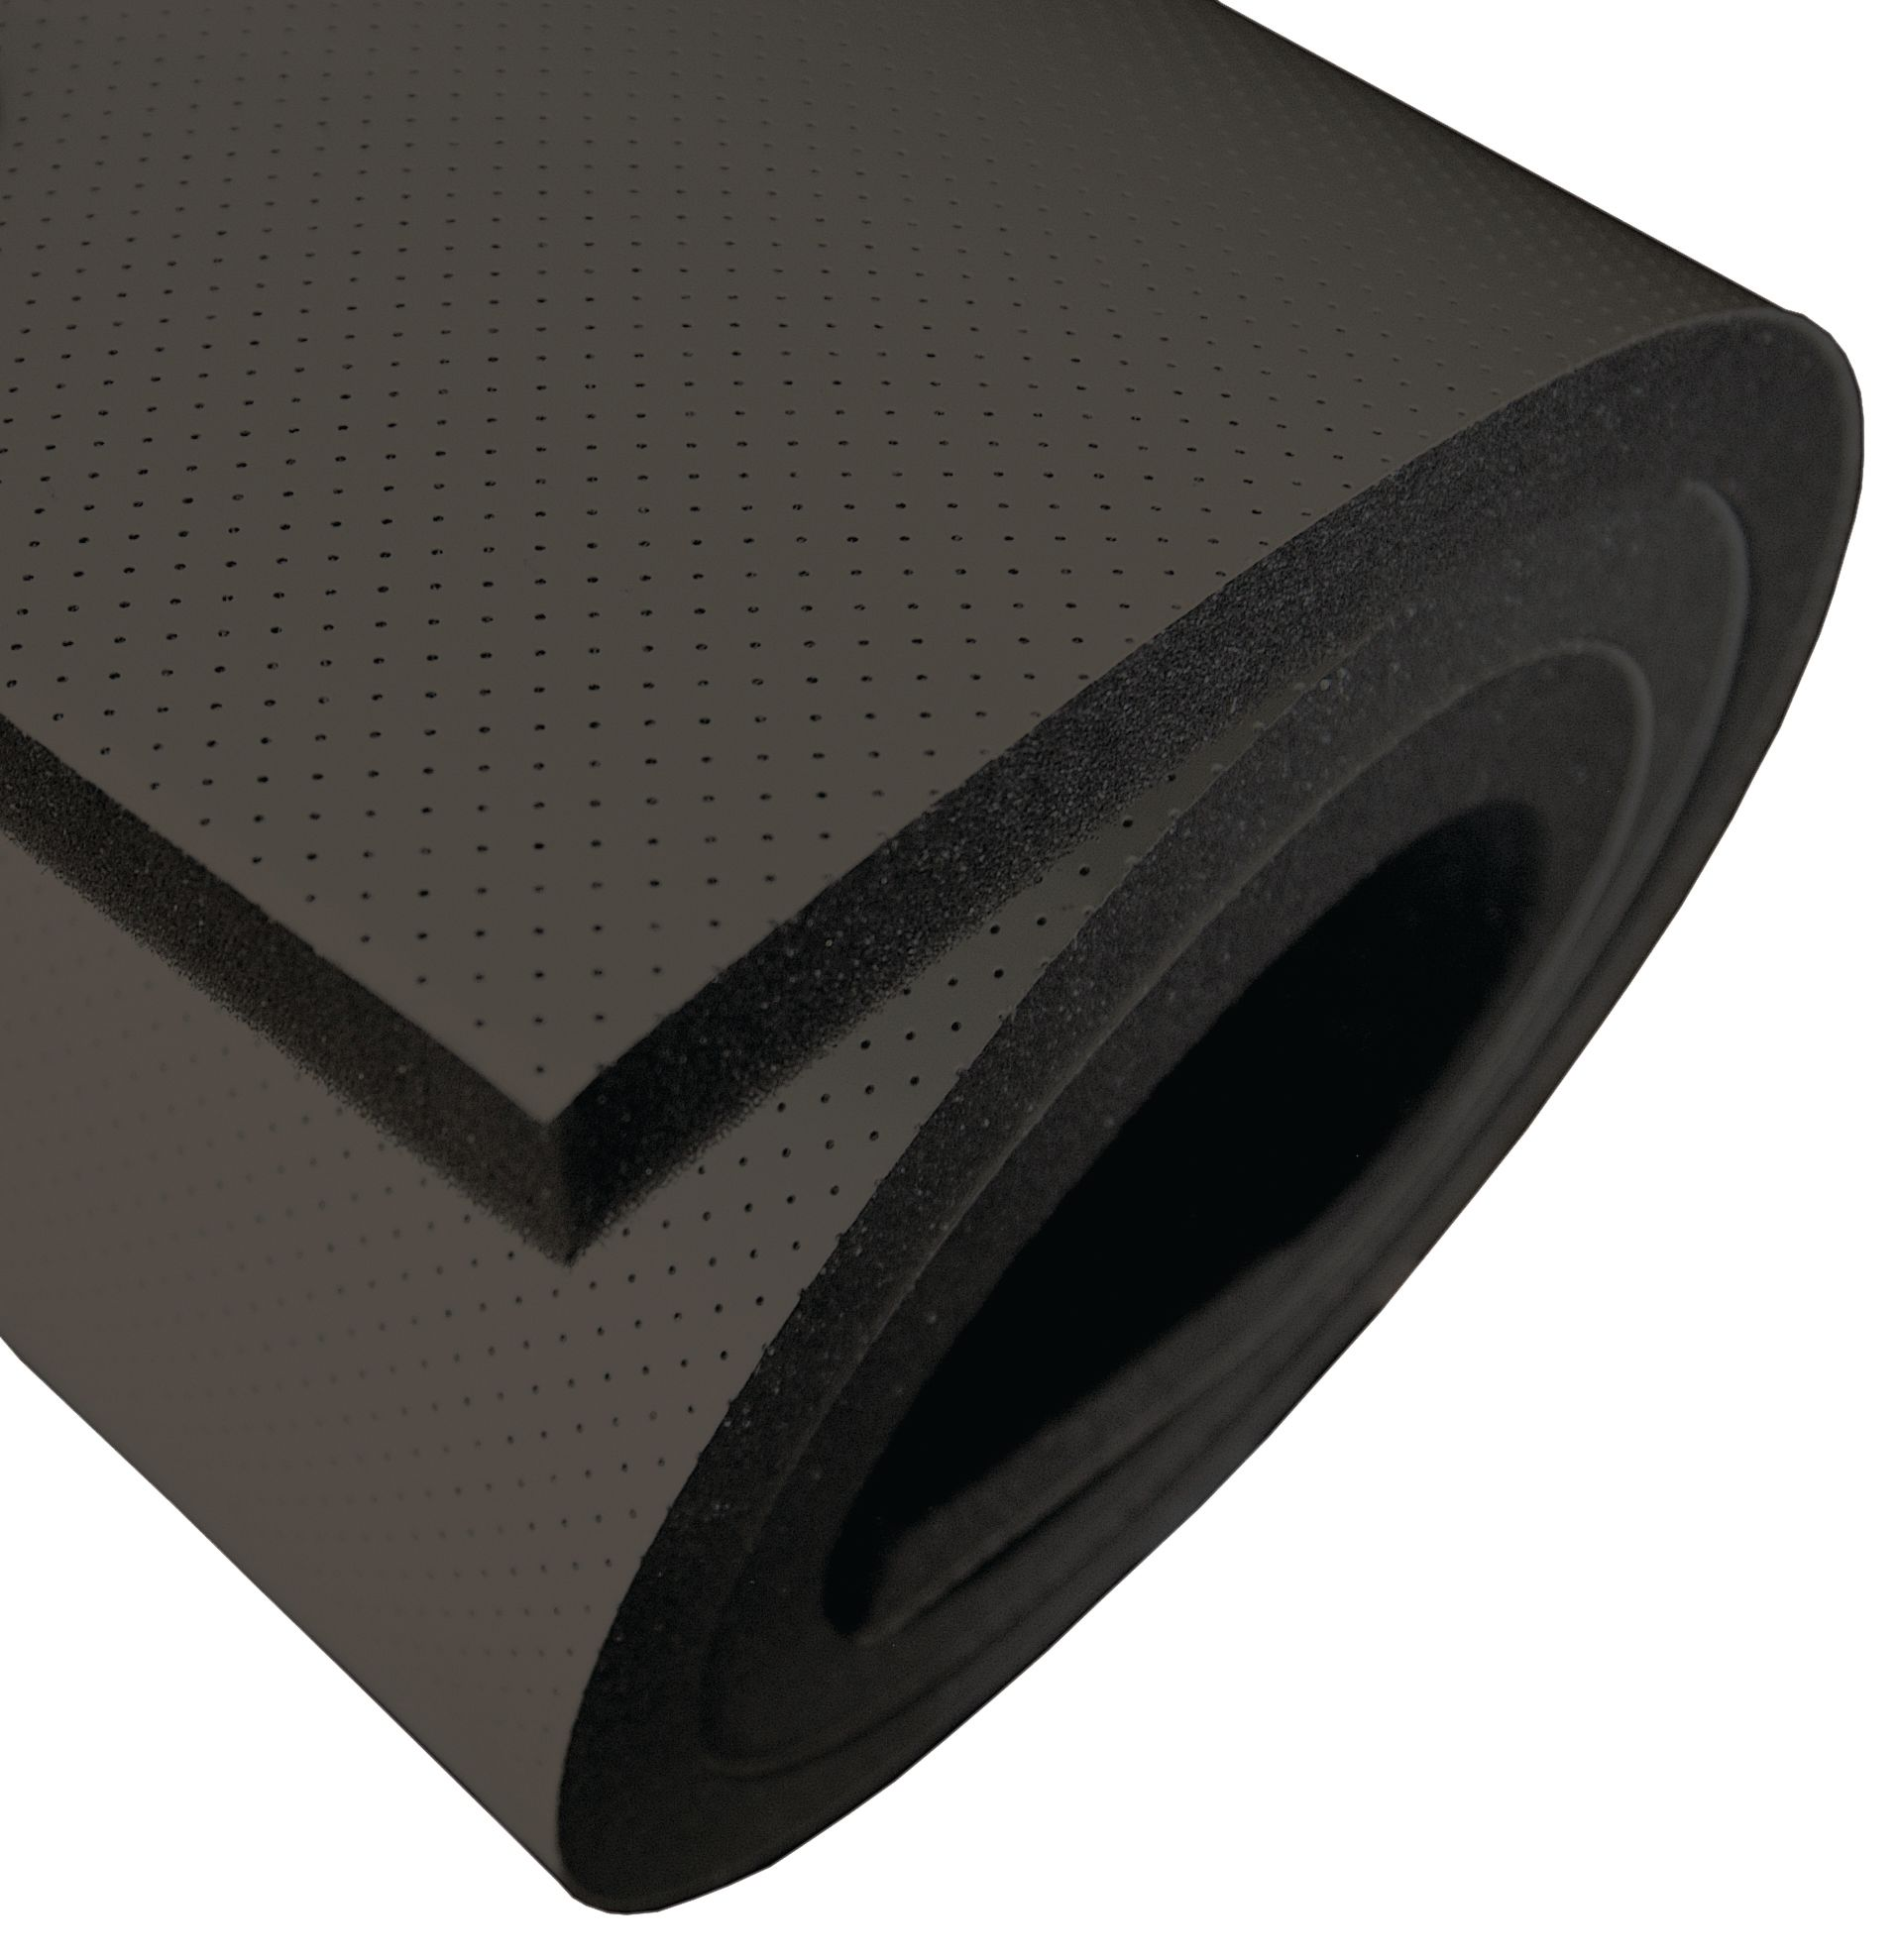 MATBRO INTERIOR TRIM-DARK GREY